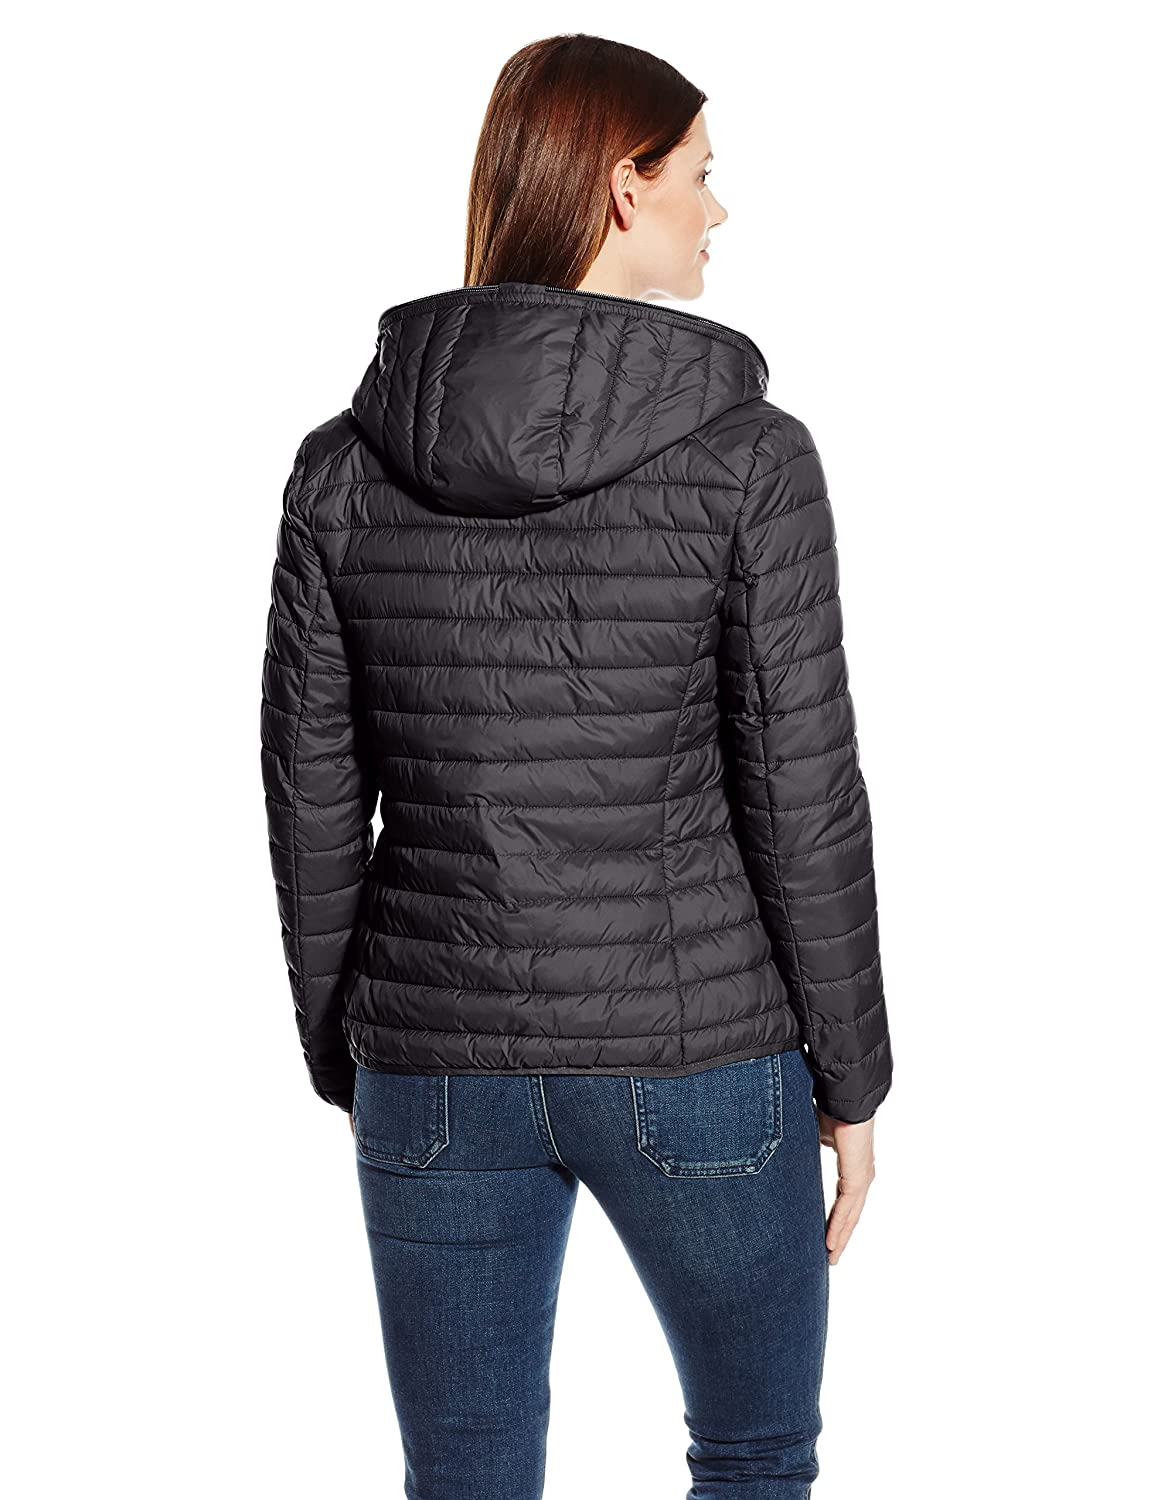 ecac5d806c1a Save The Duck Women's Giga Packable Down Jacket, Black, 4: Amazon.ca:  Clothing & Accessories